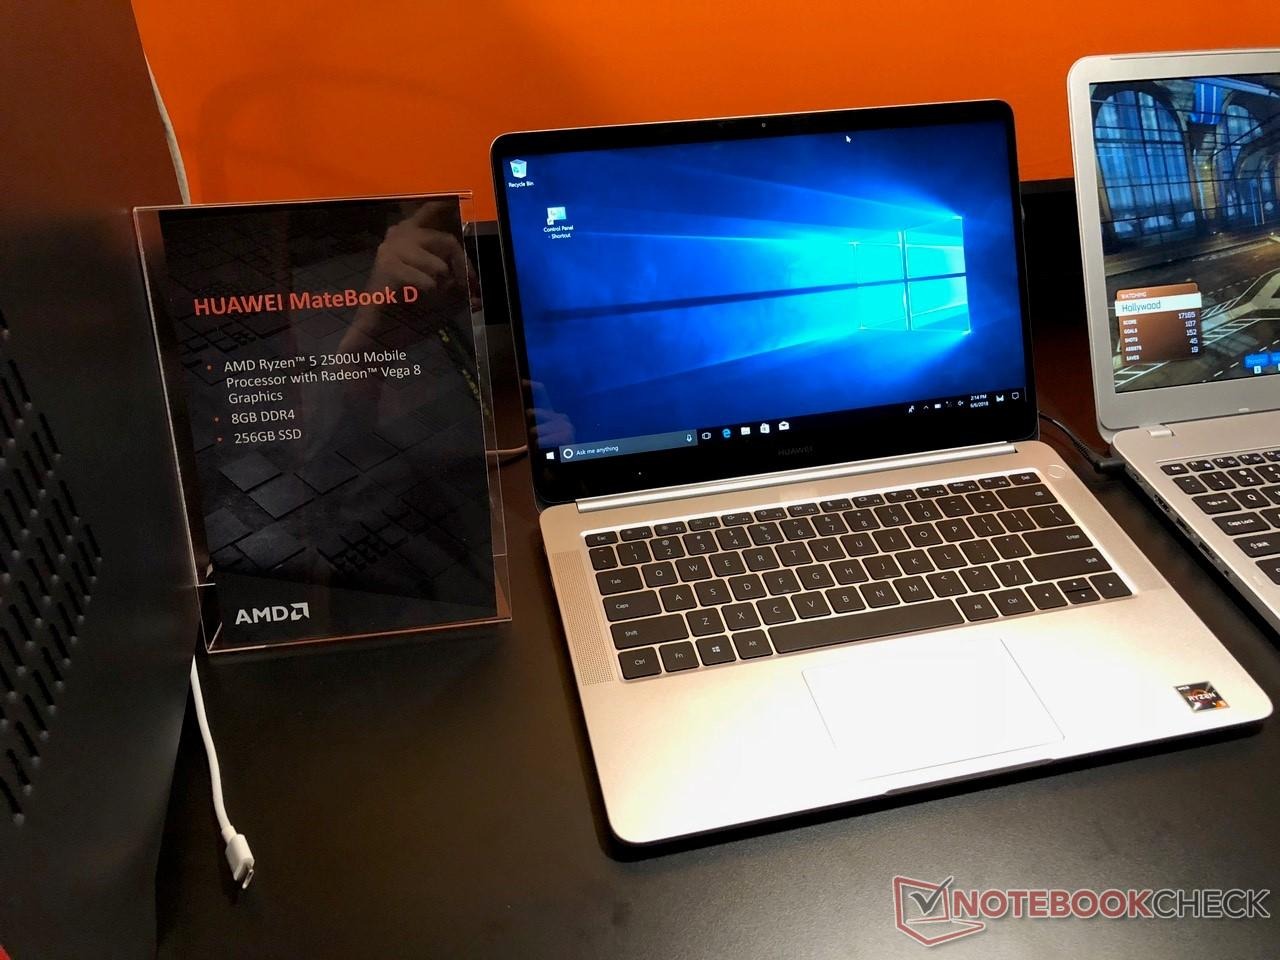 The Huawei MateBook D gets an unexpected refresh to include the